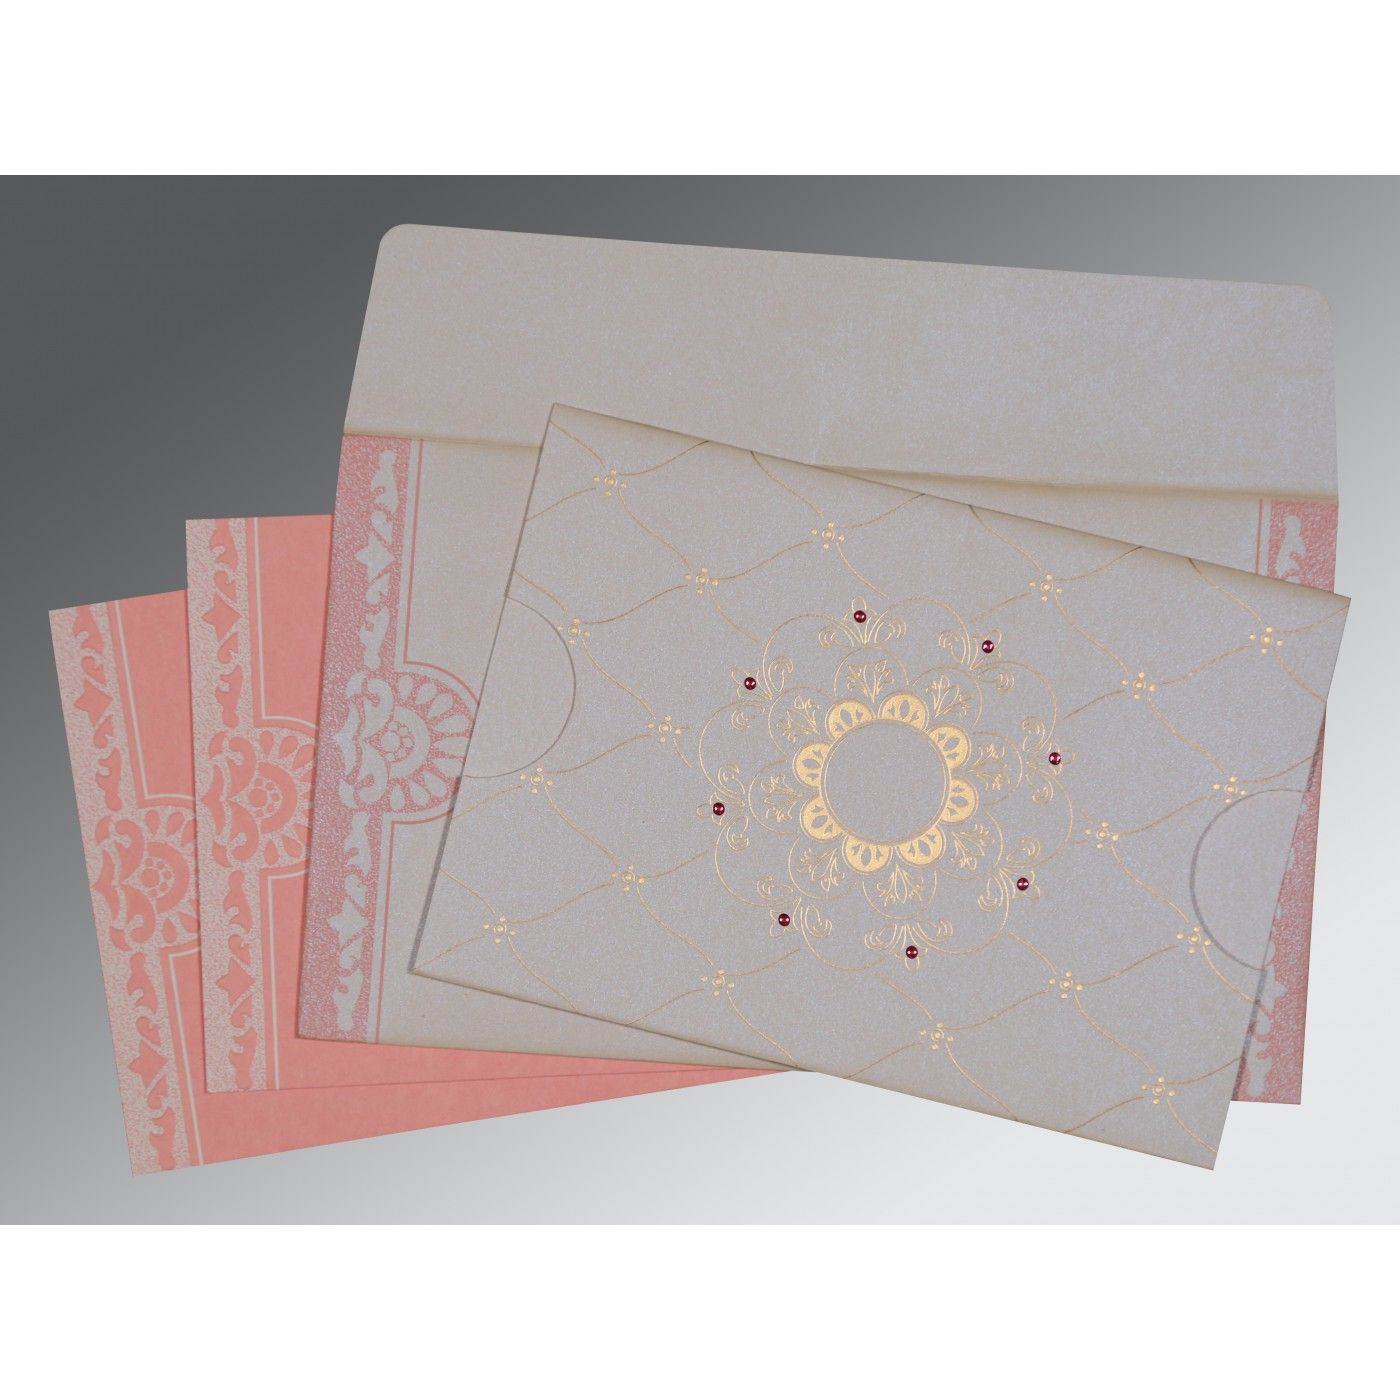 OFF-WHITE PINK SHIMMERY FLORAL THEMED - SCREEN PRINTED WEDDING CARD : CRU-8227M - IndianWeddingCards